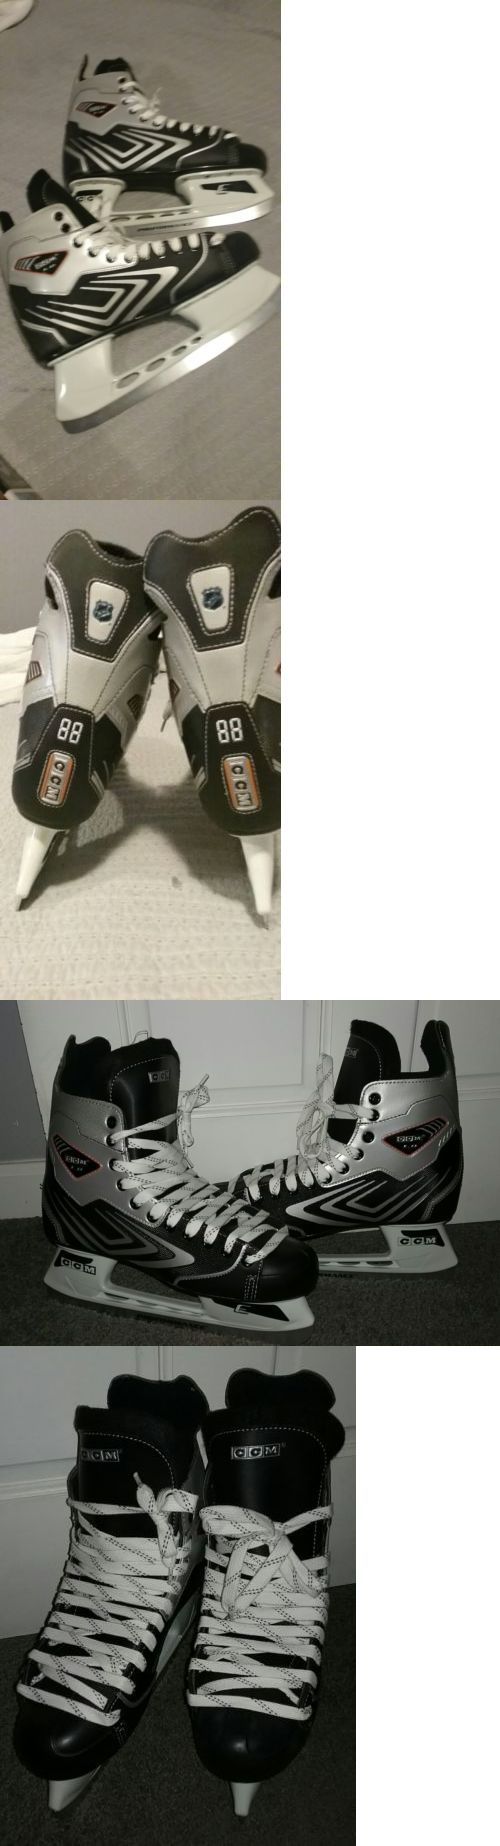 Ice Hockey-Adult 20858: Ccm Hockey Skates Size 12 Senior Proformance New Without Tags Perfect Condition -> BUY IT NOW ONLY: $75 on eBay!